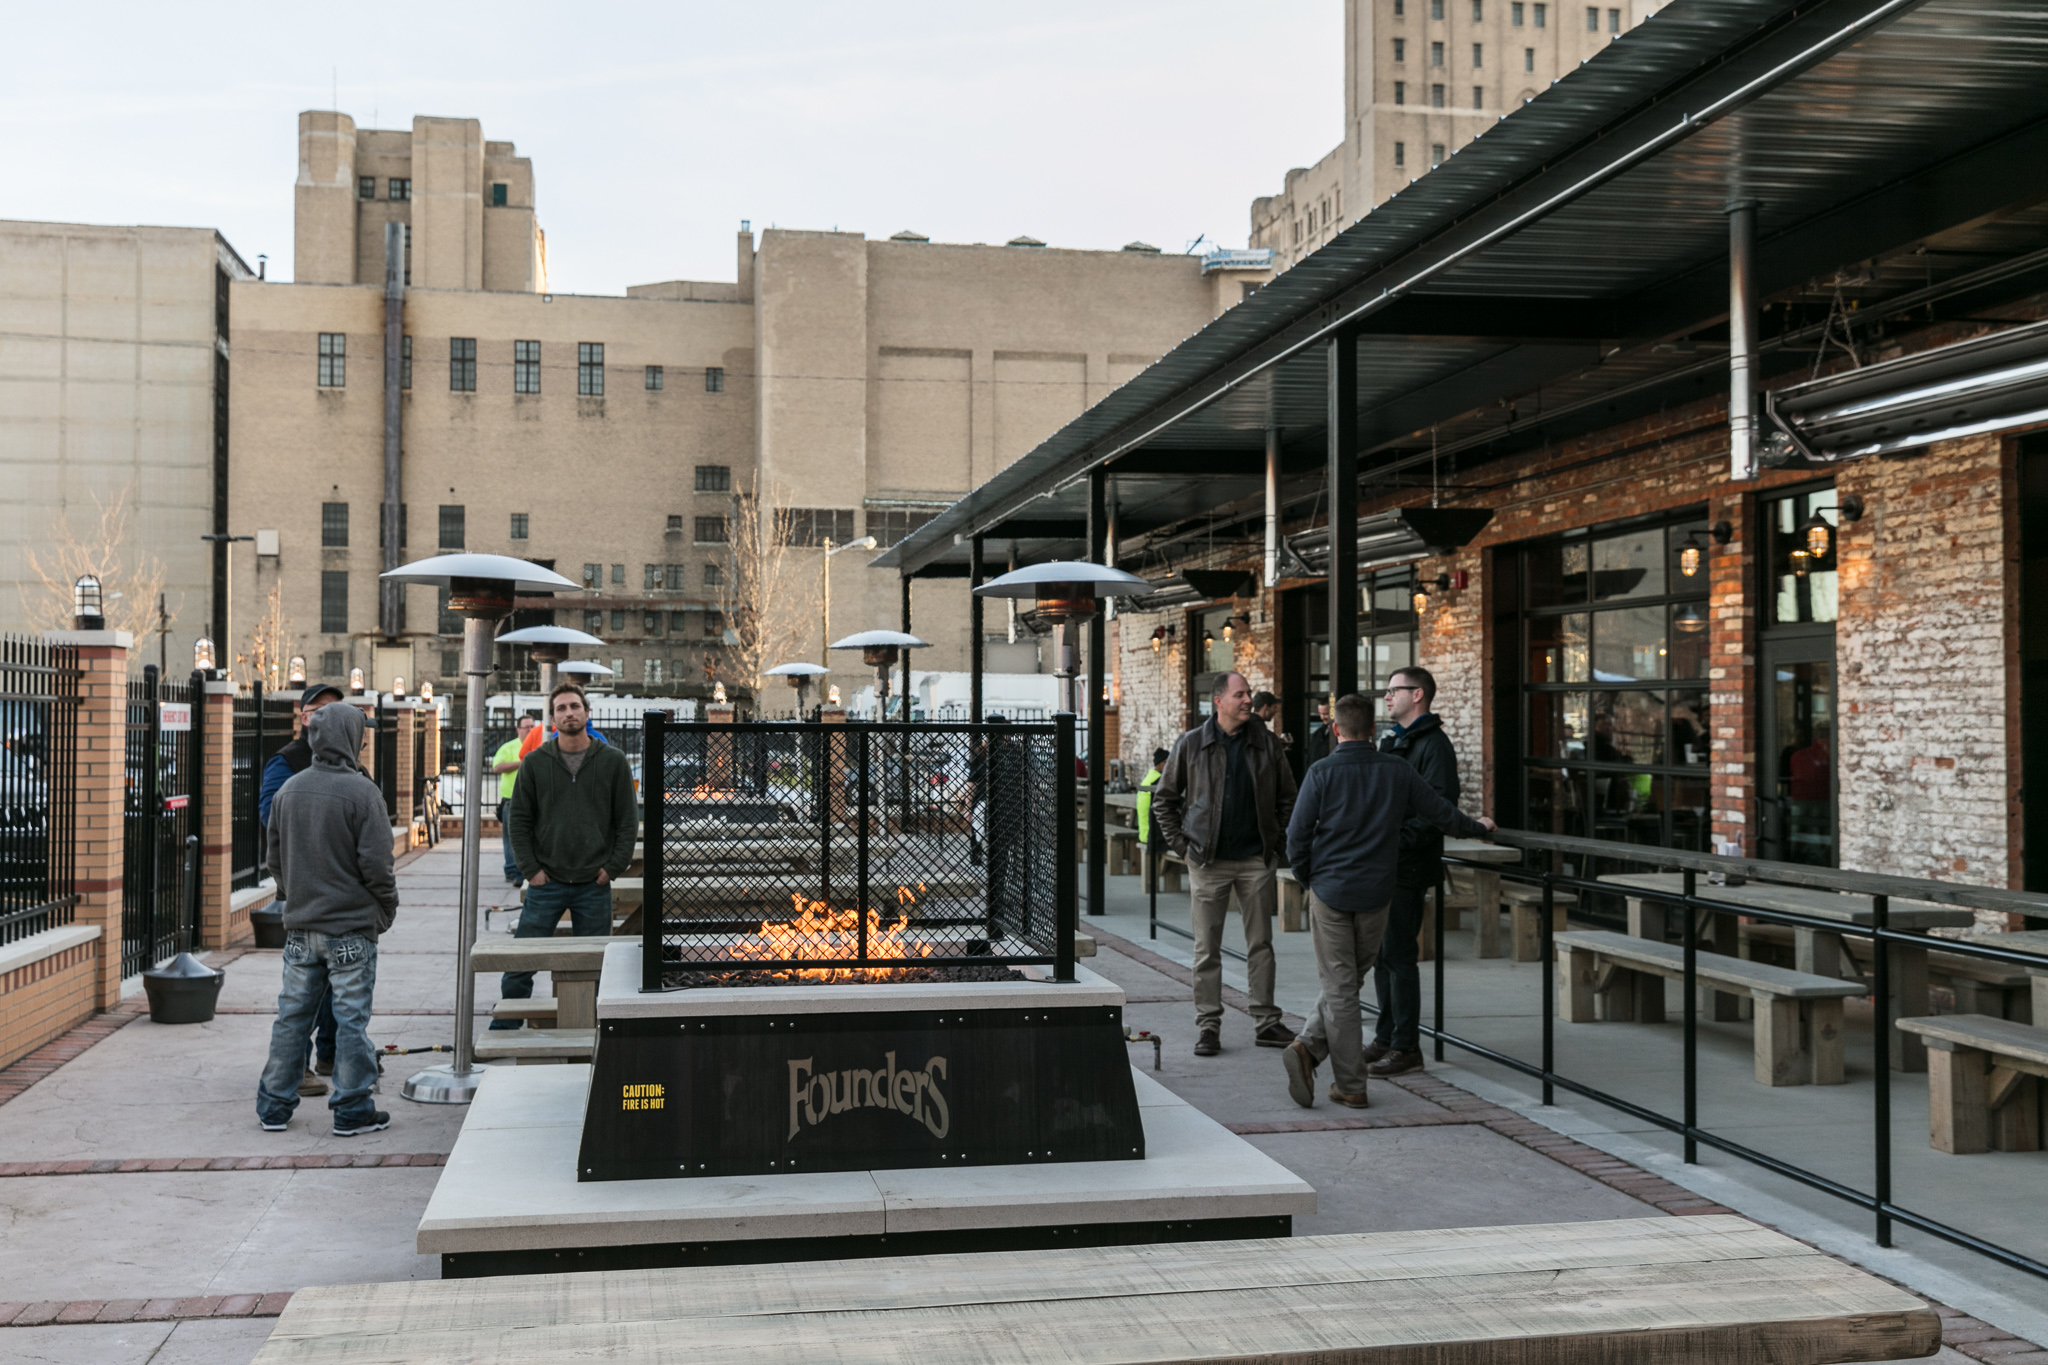 Customers mill around a lit fire pit on the patio at Founders in Detroit.